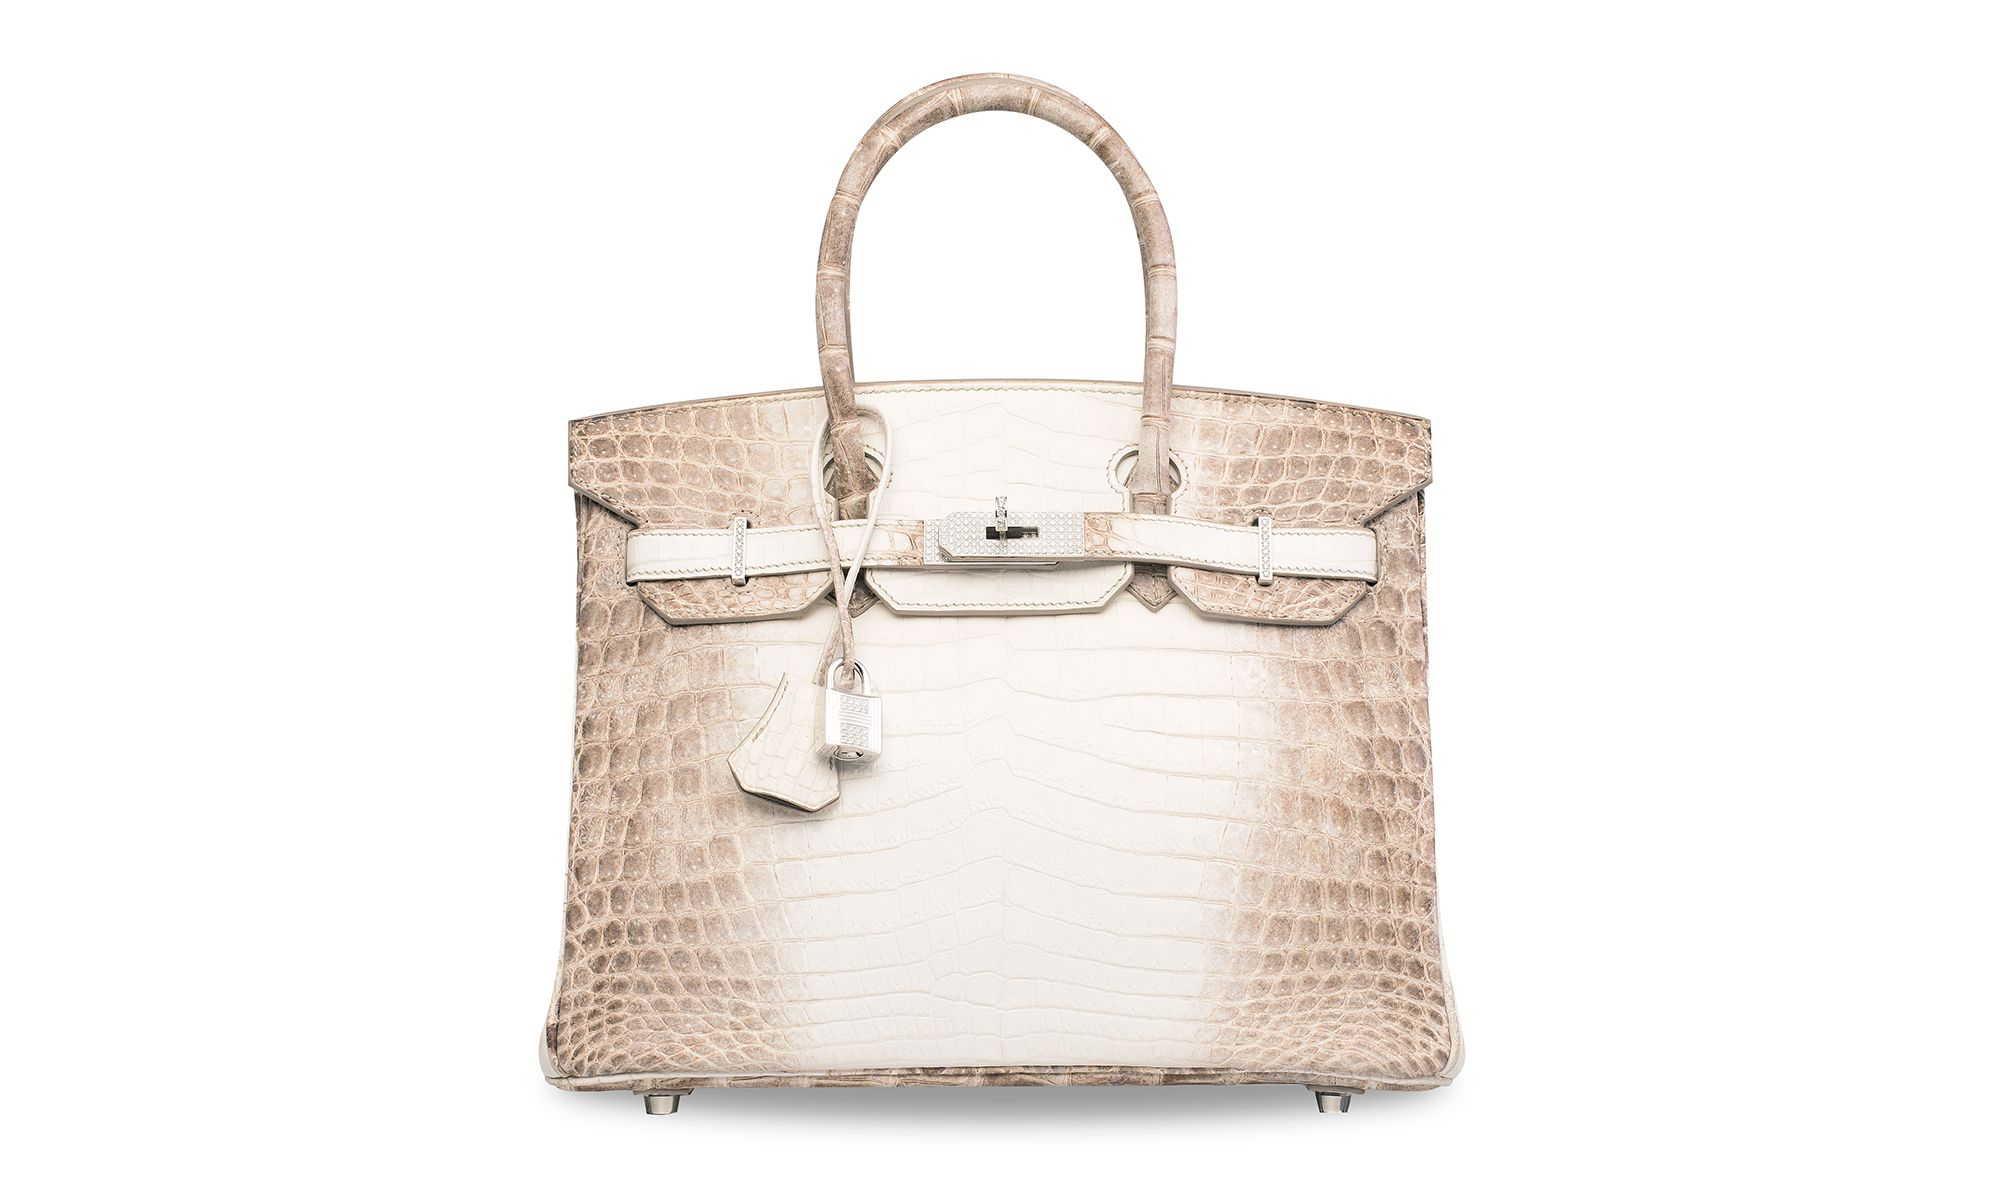 World's Most Expensive Handbag to be Auctioned in Hong Kong